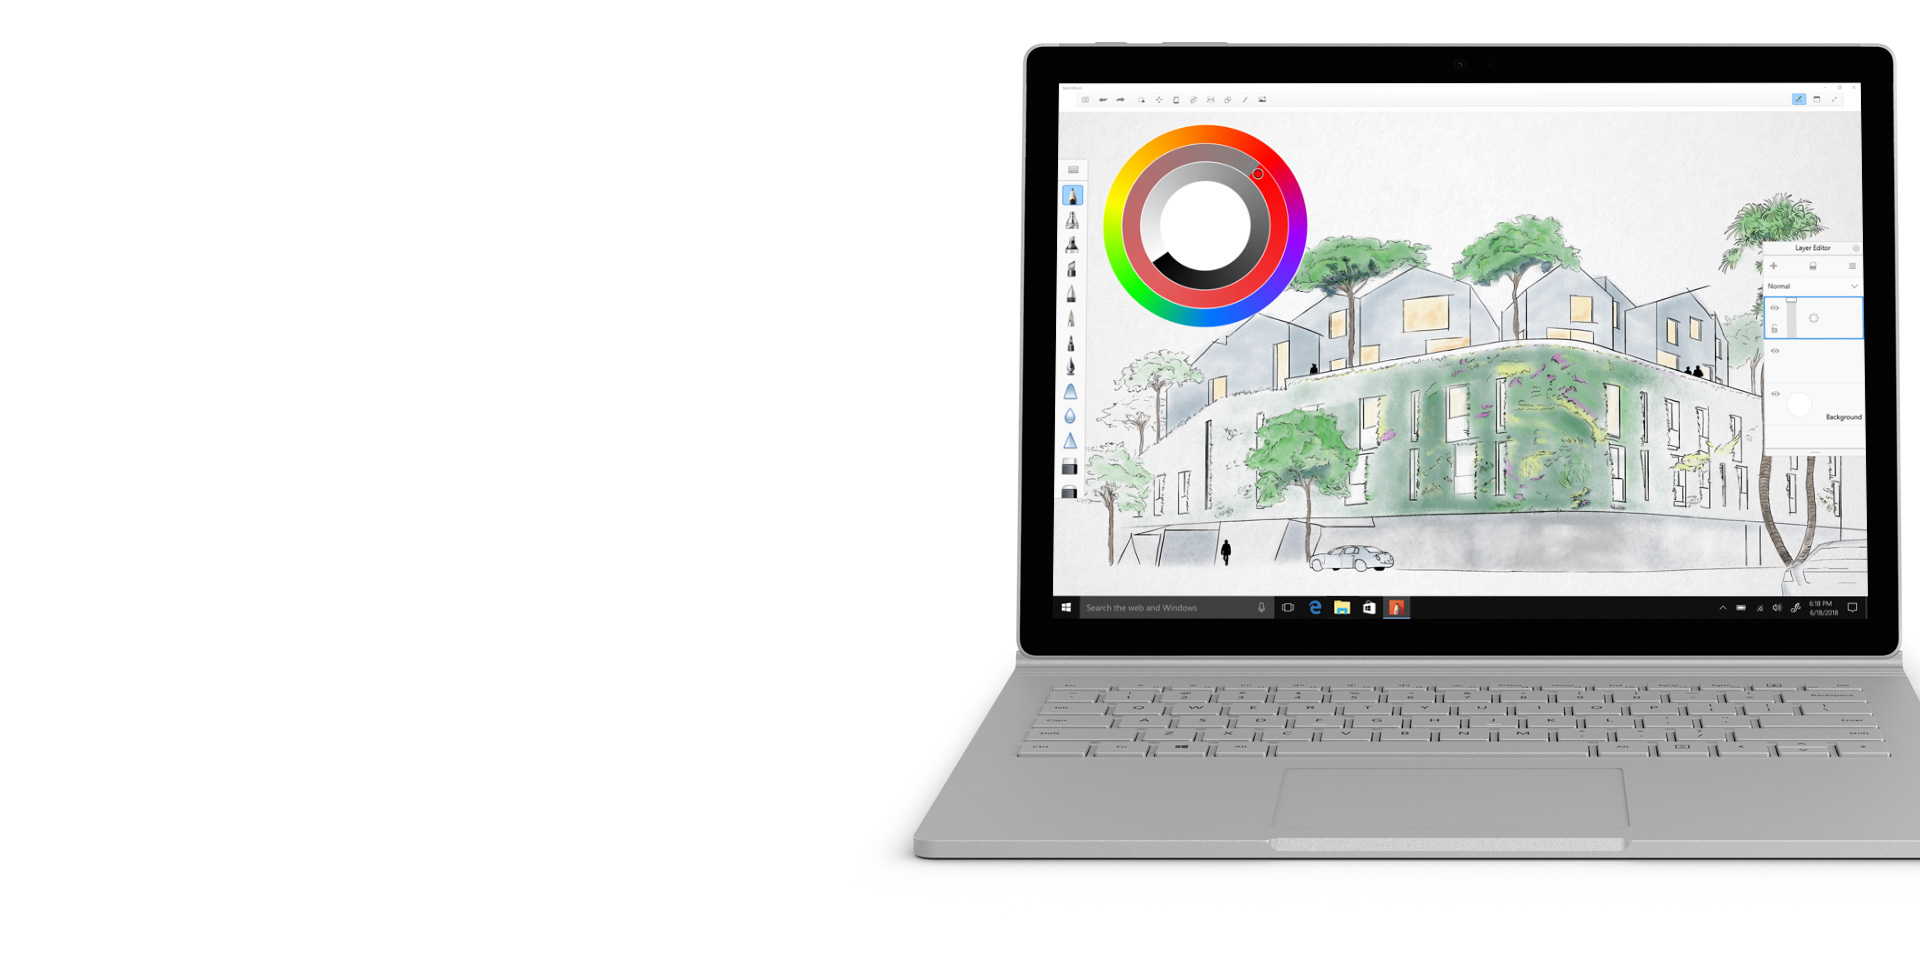 Autodesk SketchBook บนจอแสดงผล Surface Book 2